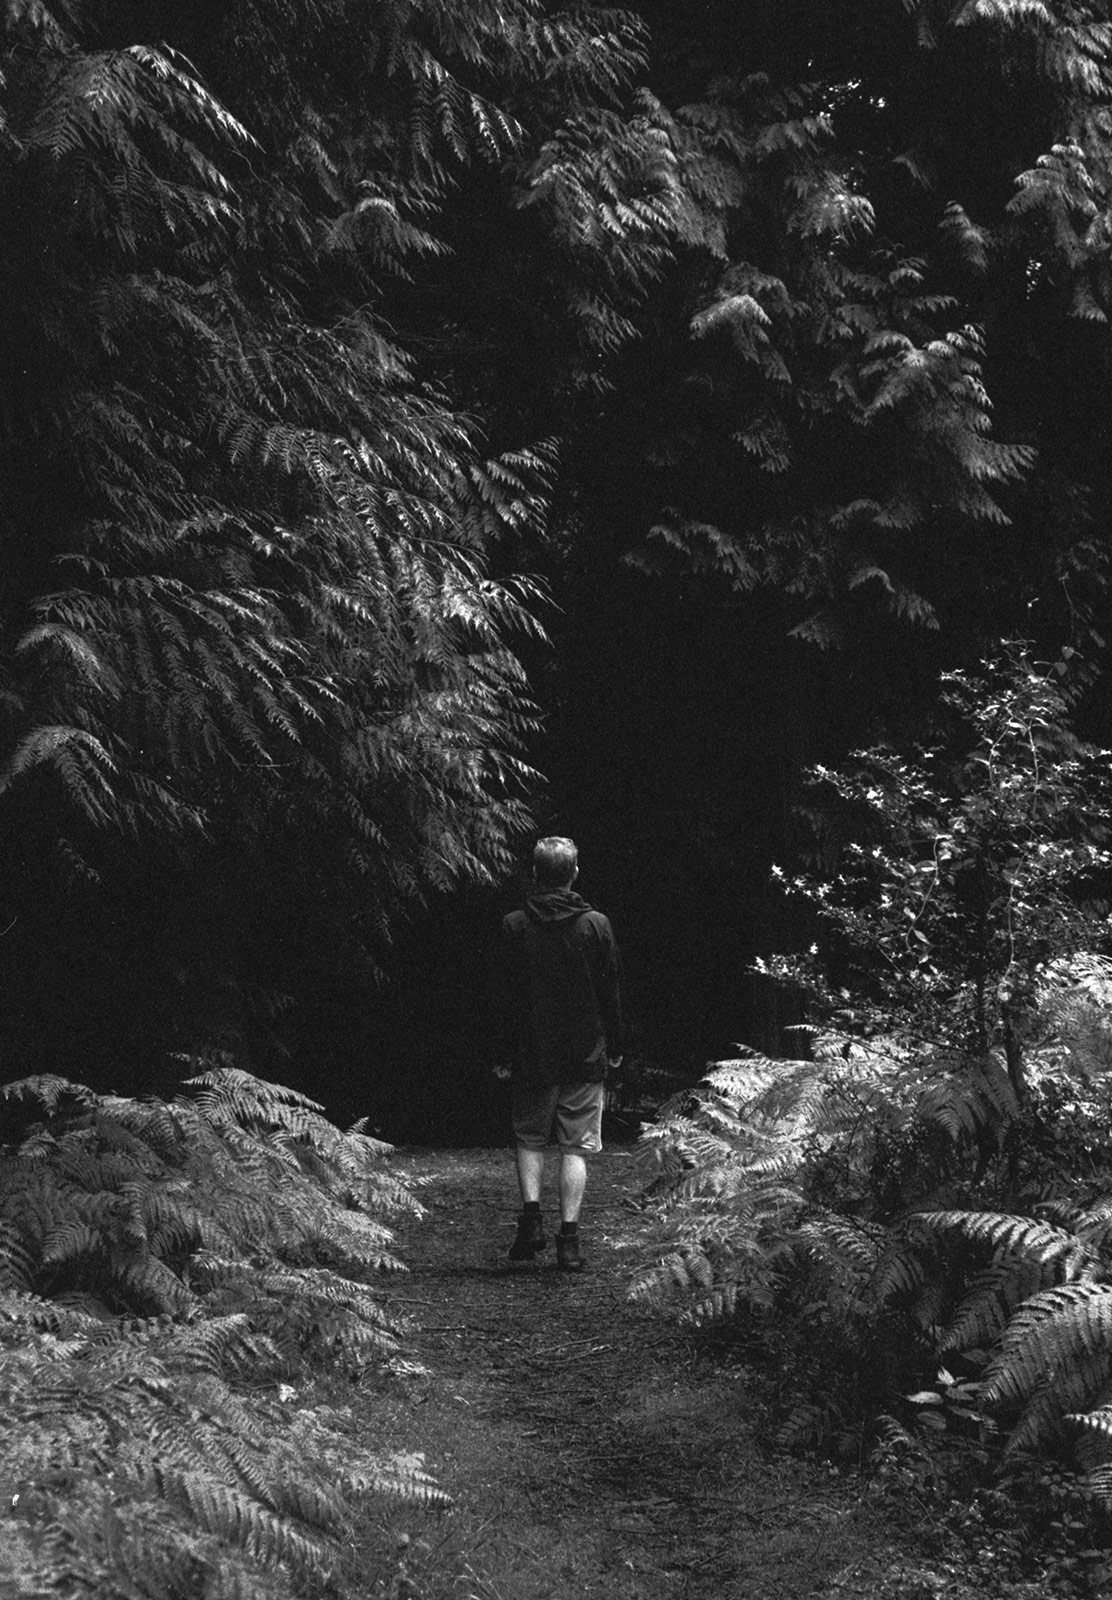 Man walking in dark forest